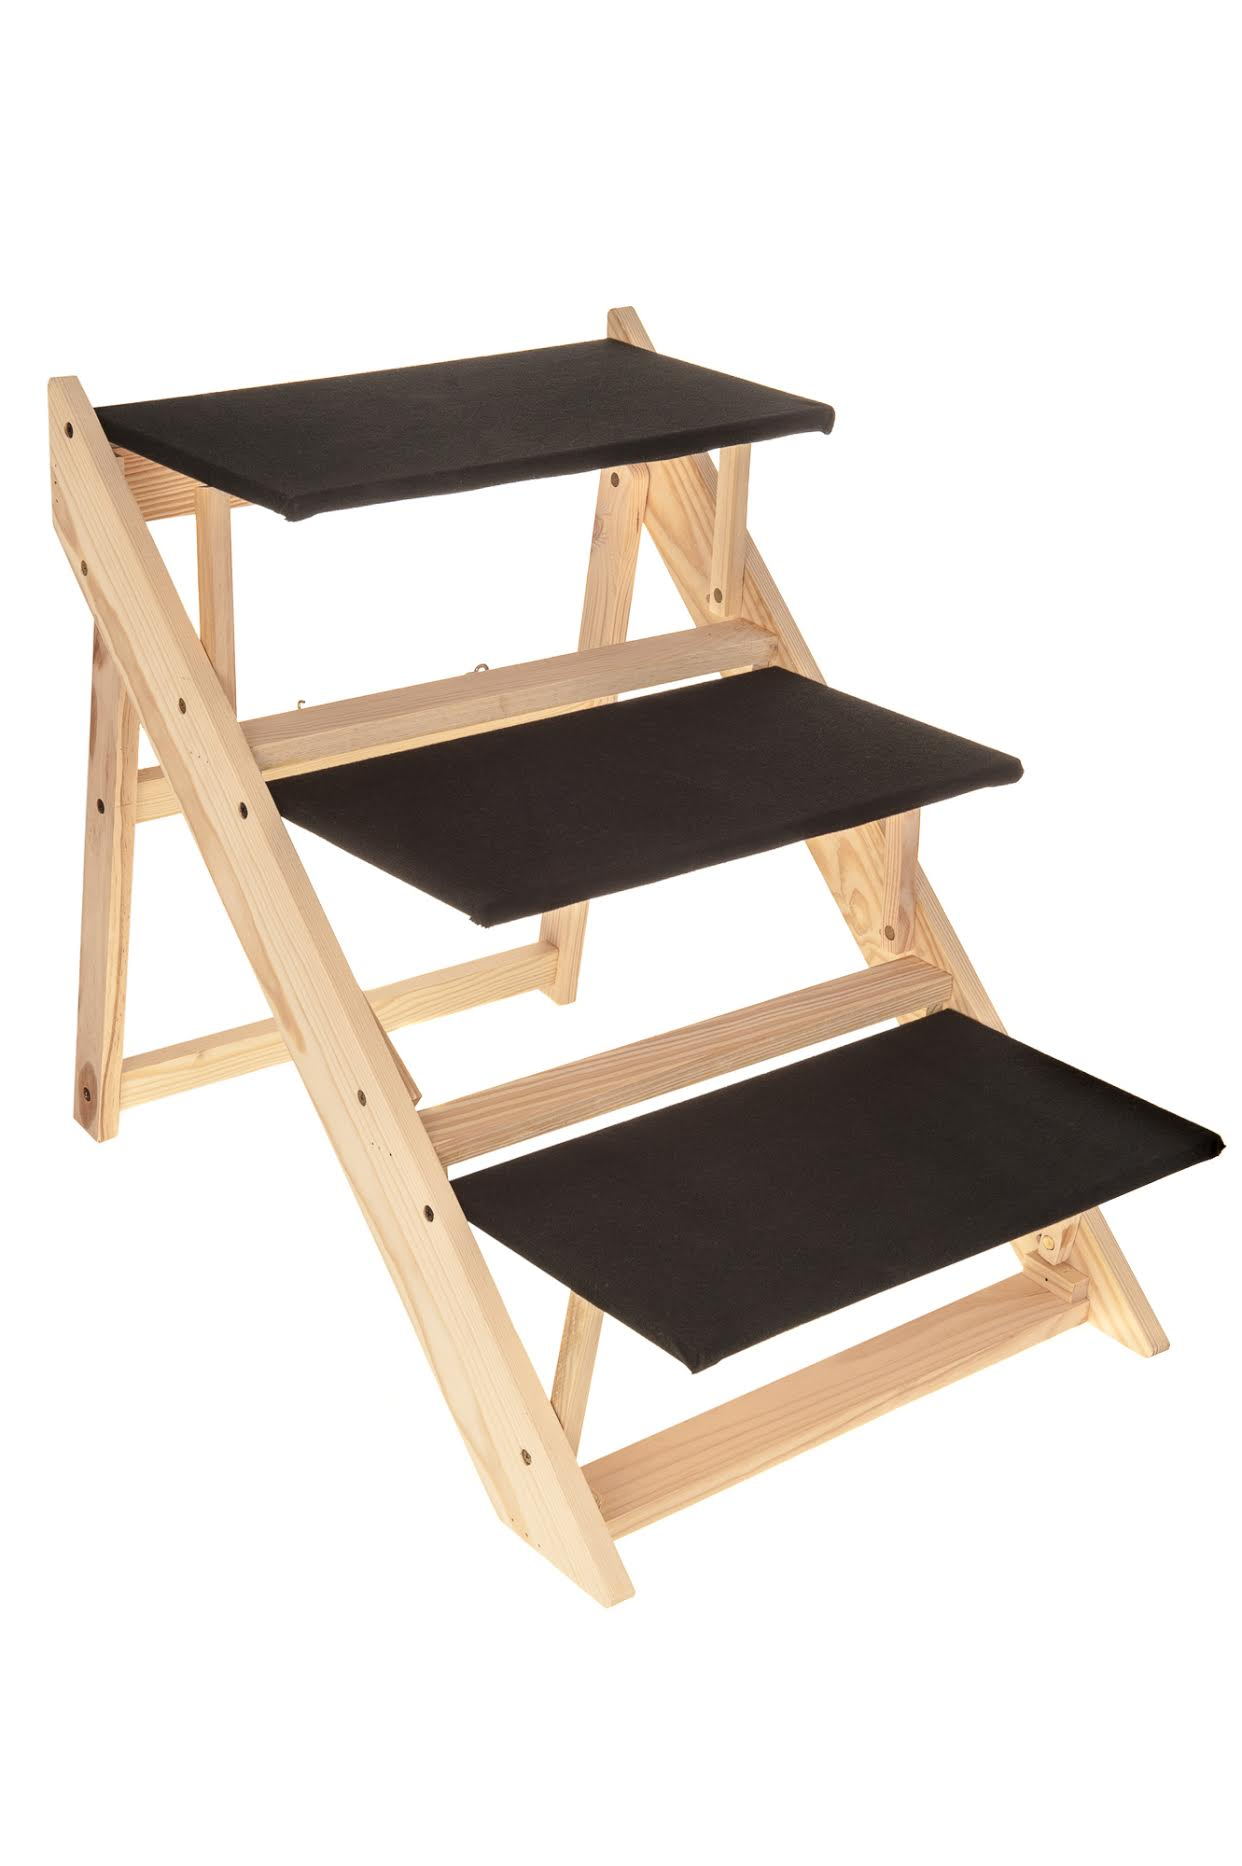 New Portable Wooden 2 In 1 Pet Folding Dog Cat 3 Ramp Steps Stairs Ladder Travel Ebay